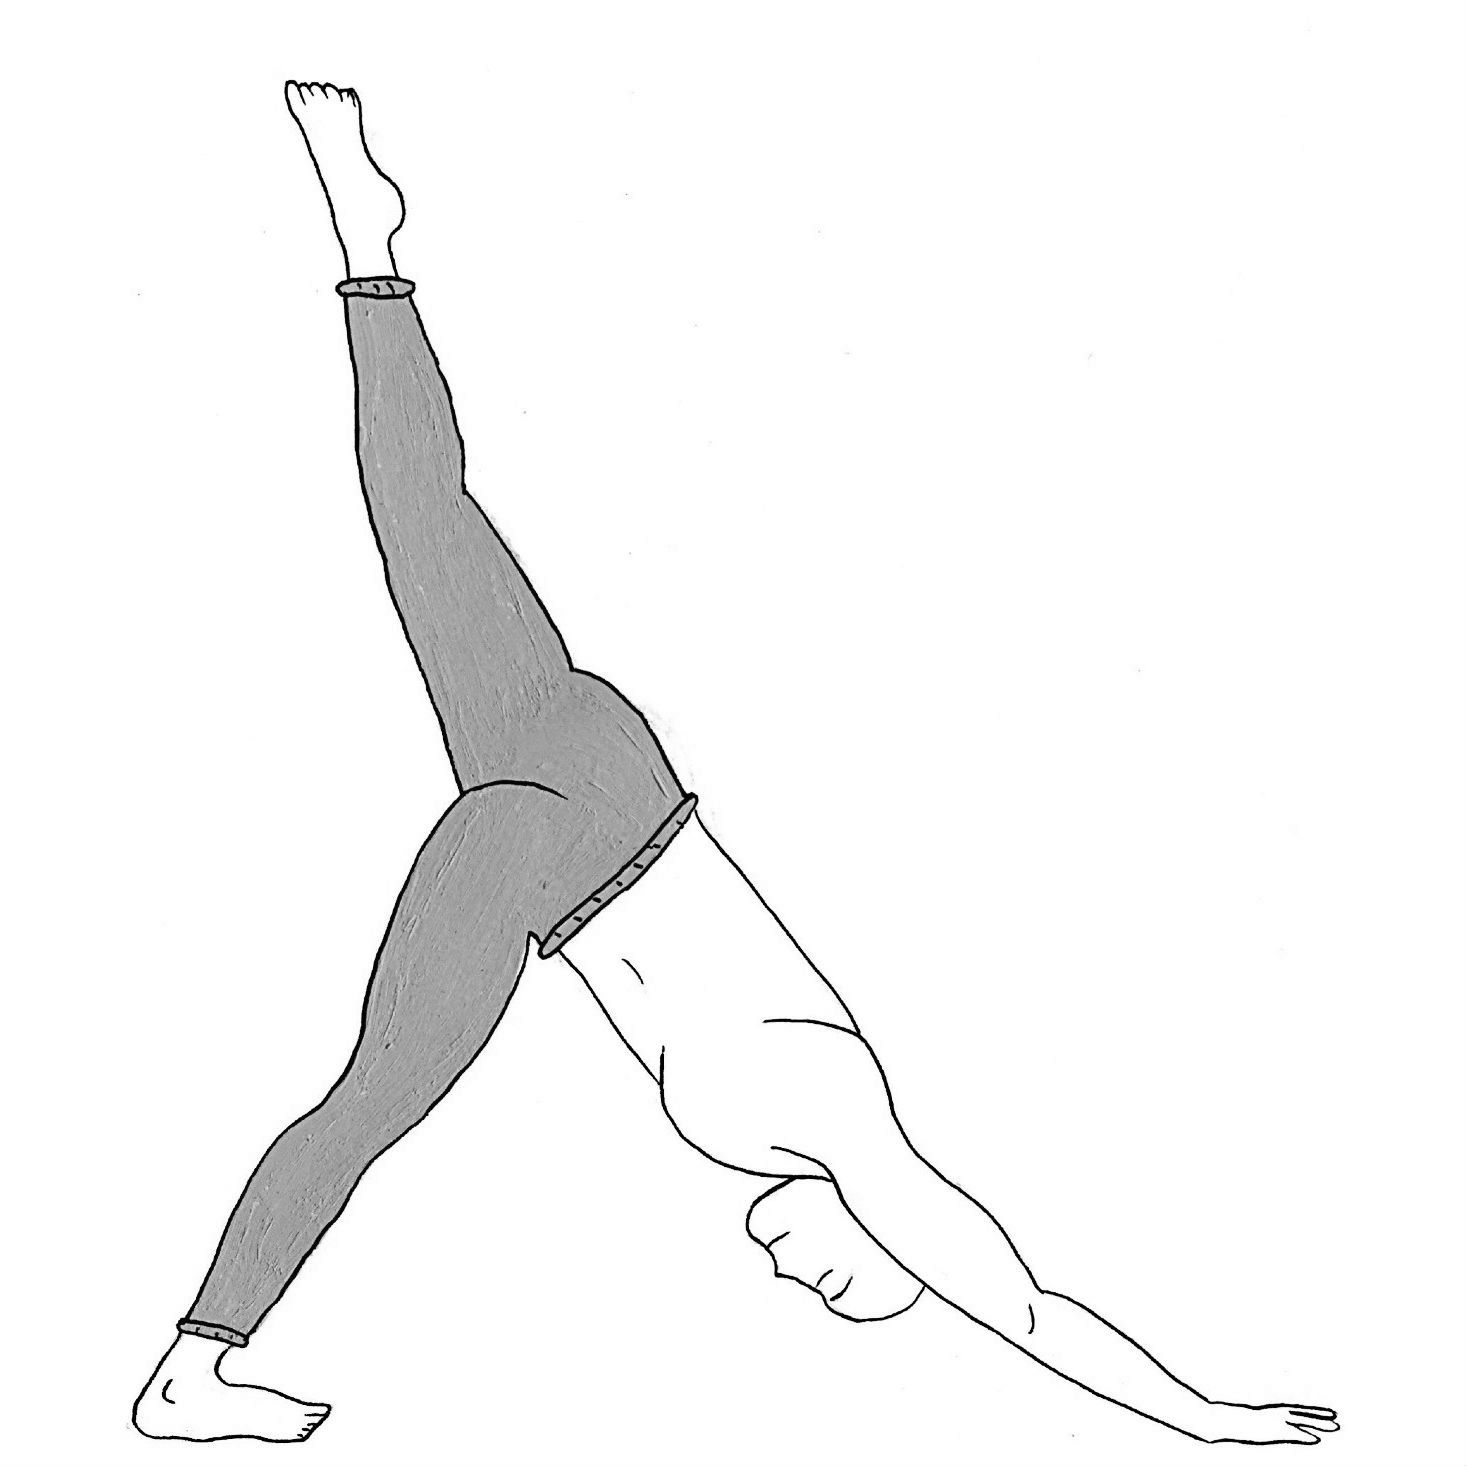 One-Legged Downward Facing Dog - Eka Pado Adho Mukha Svanasana